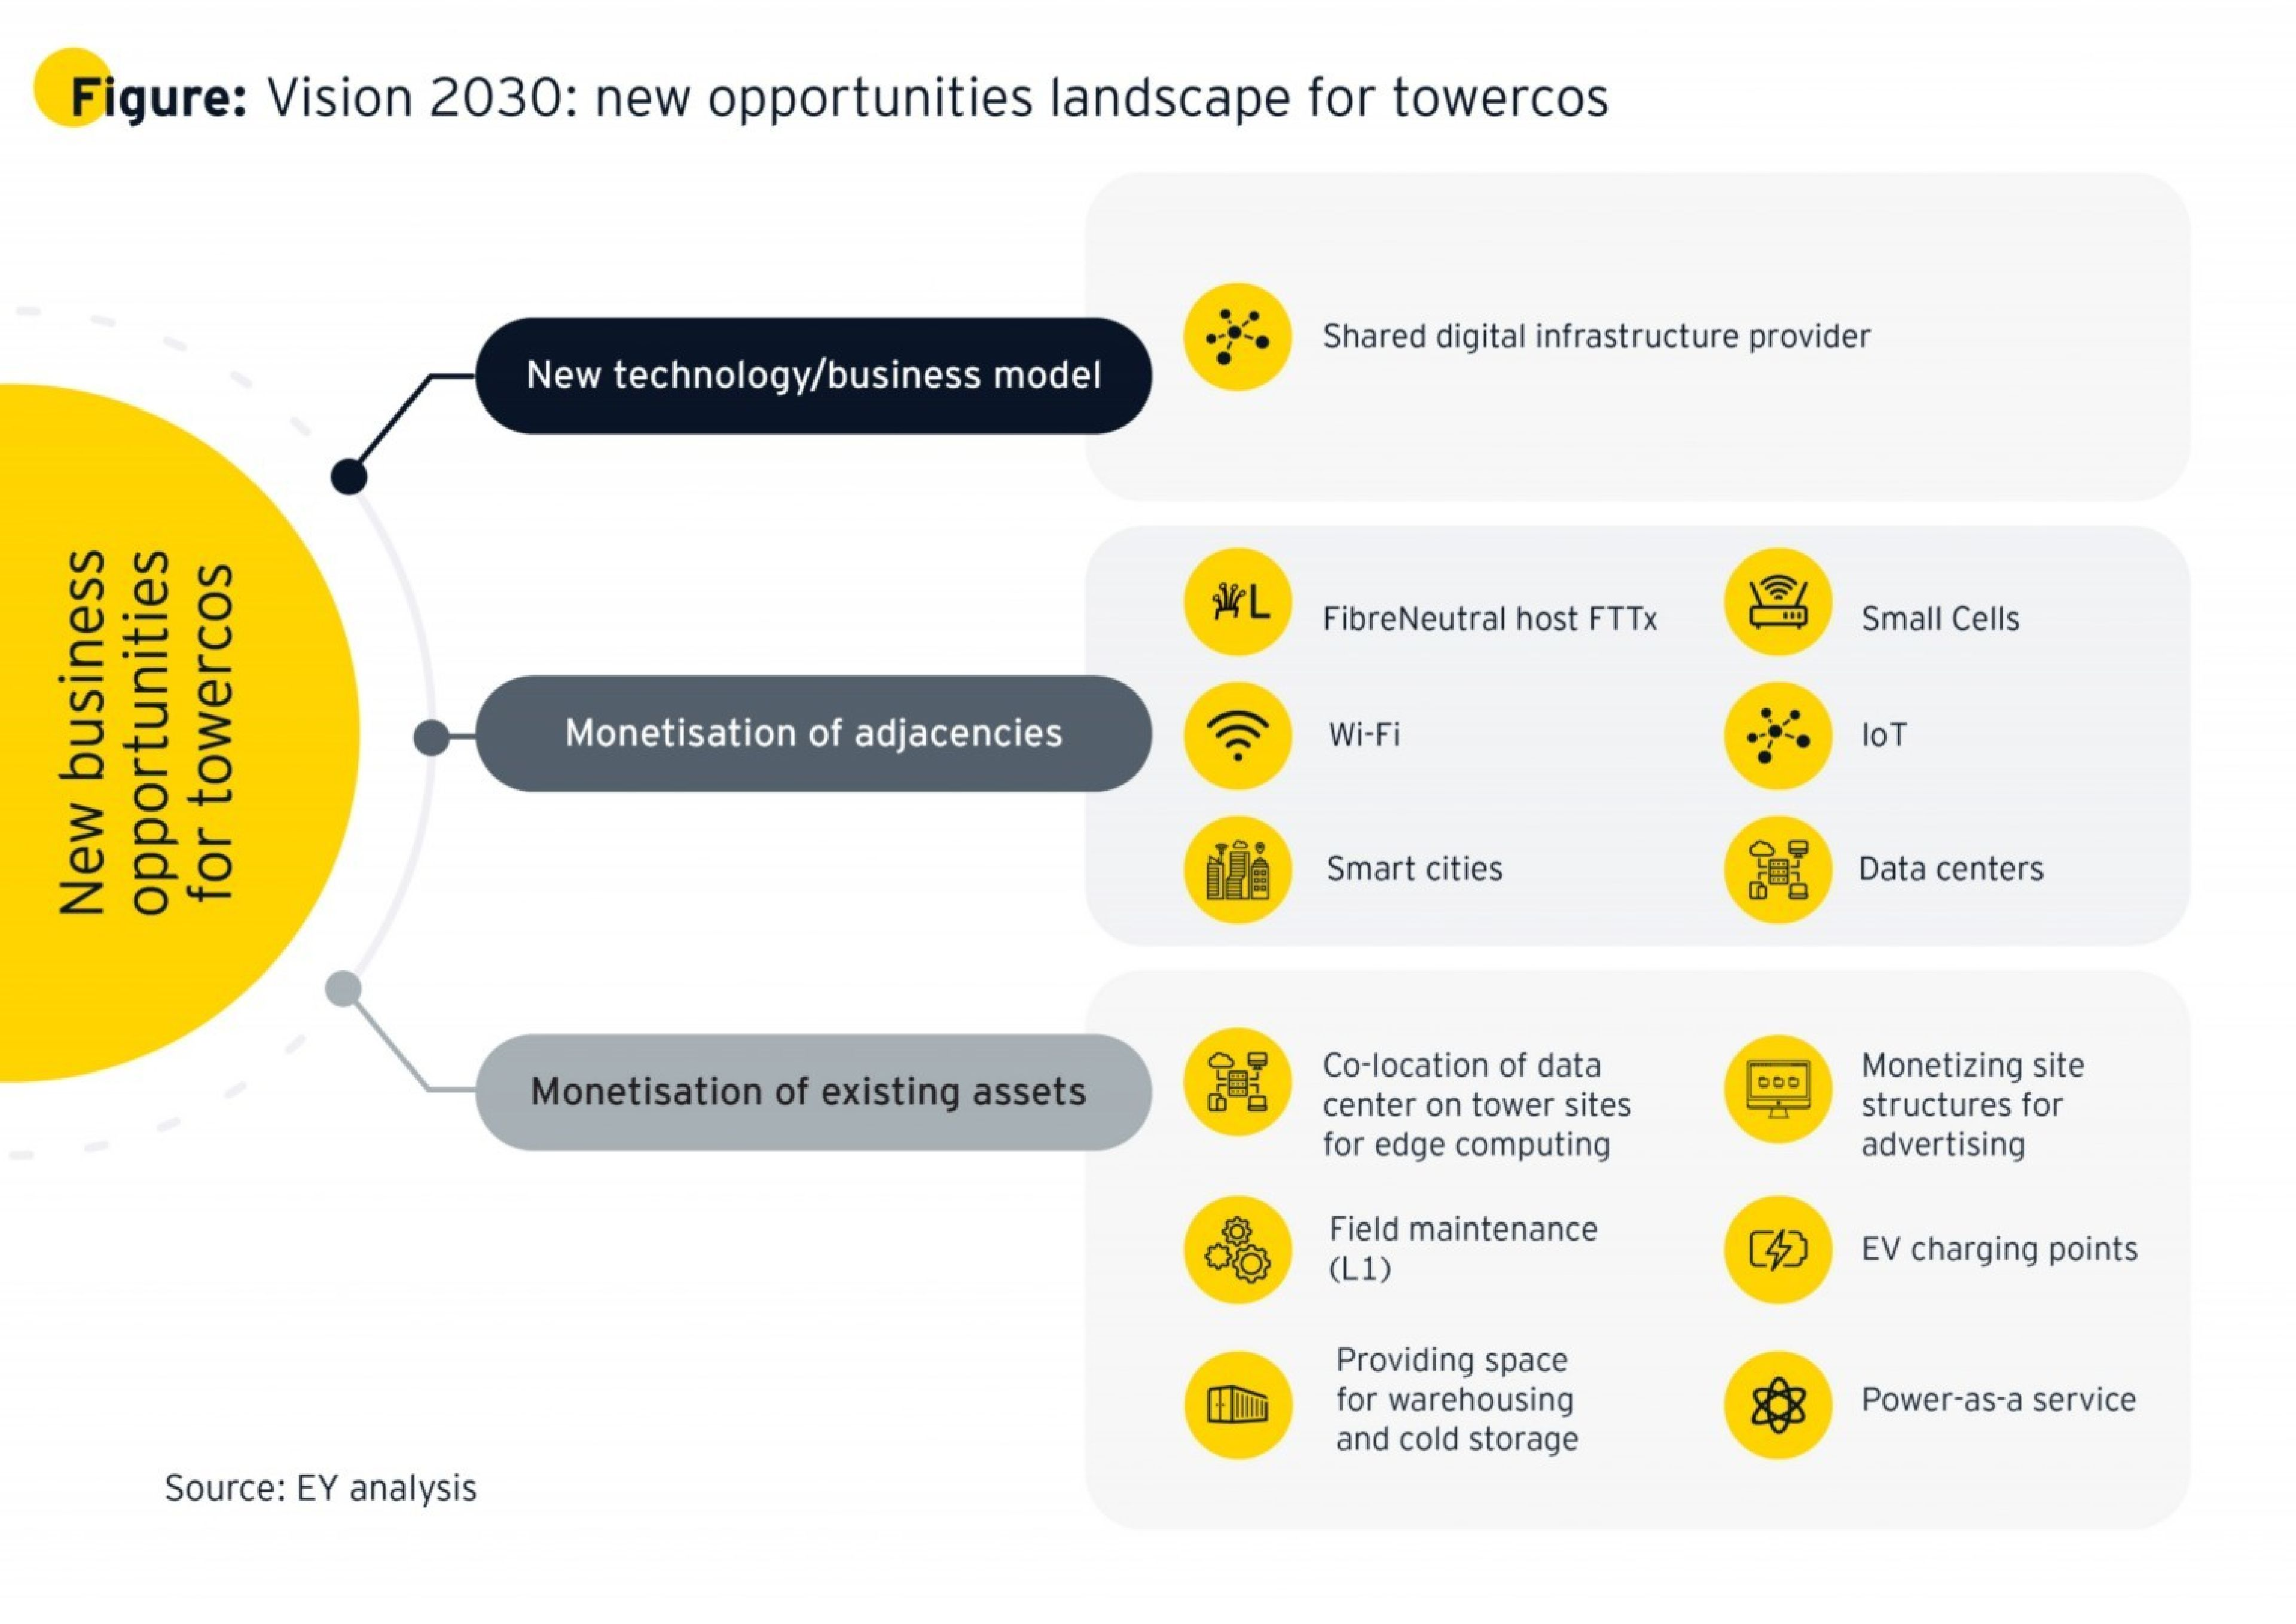 Vision 2030 - New opportunities landscape  for Tower companies